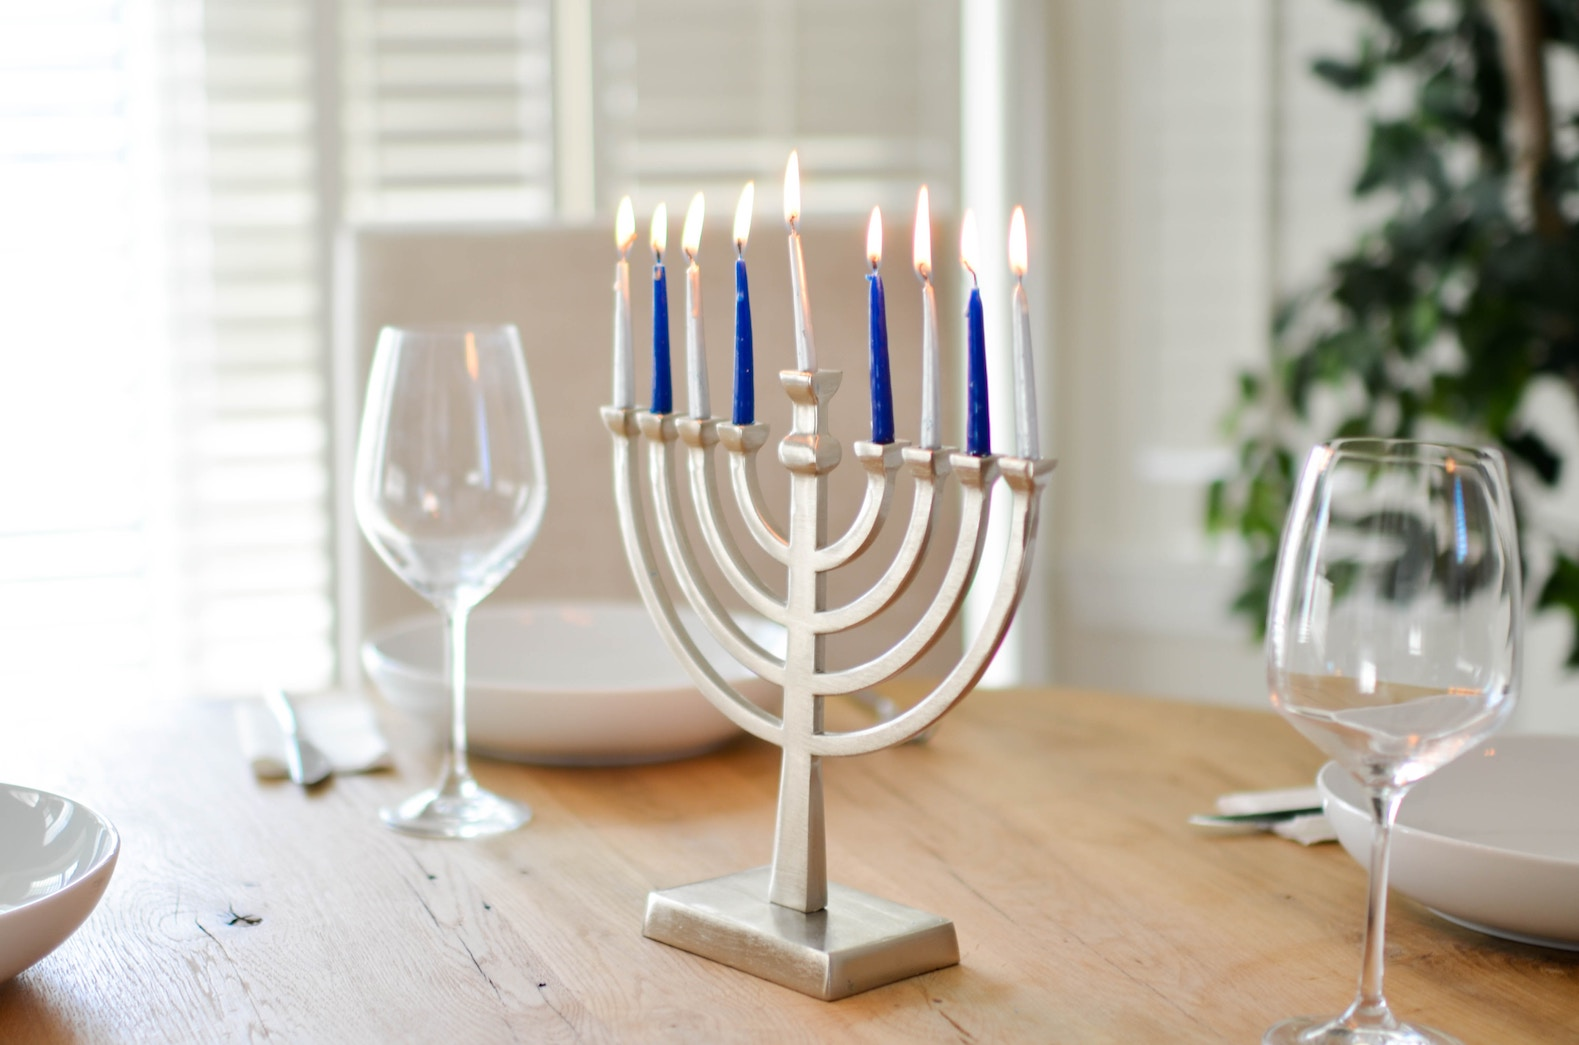 7 Simple Steps for the Ultimate Vegan Hanukkah Celebration